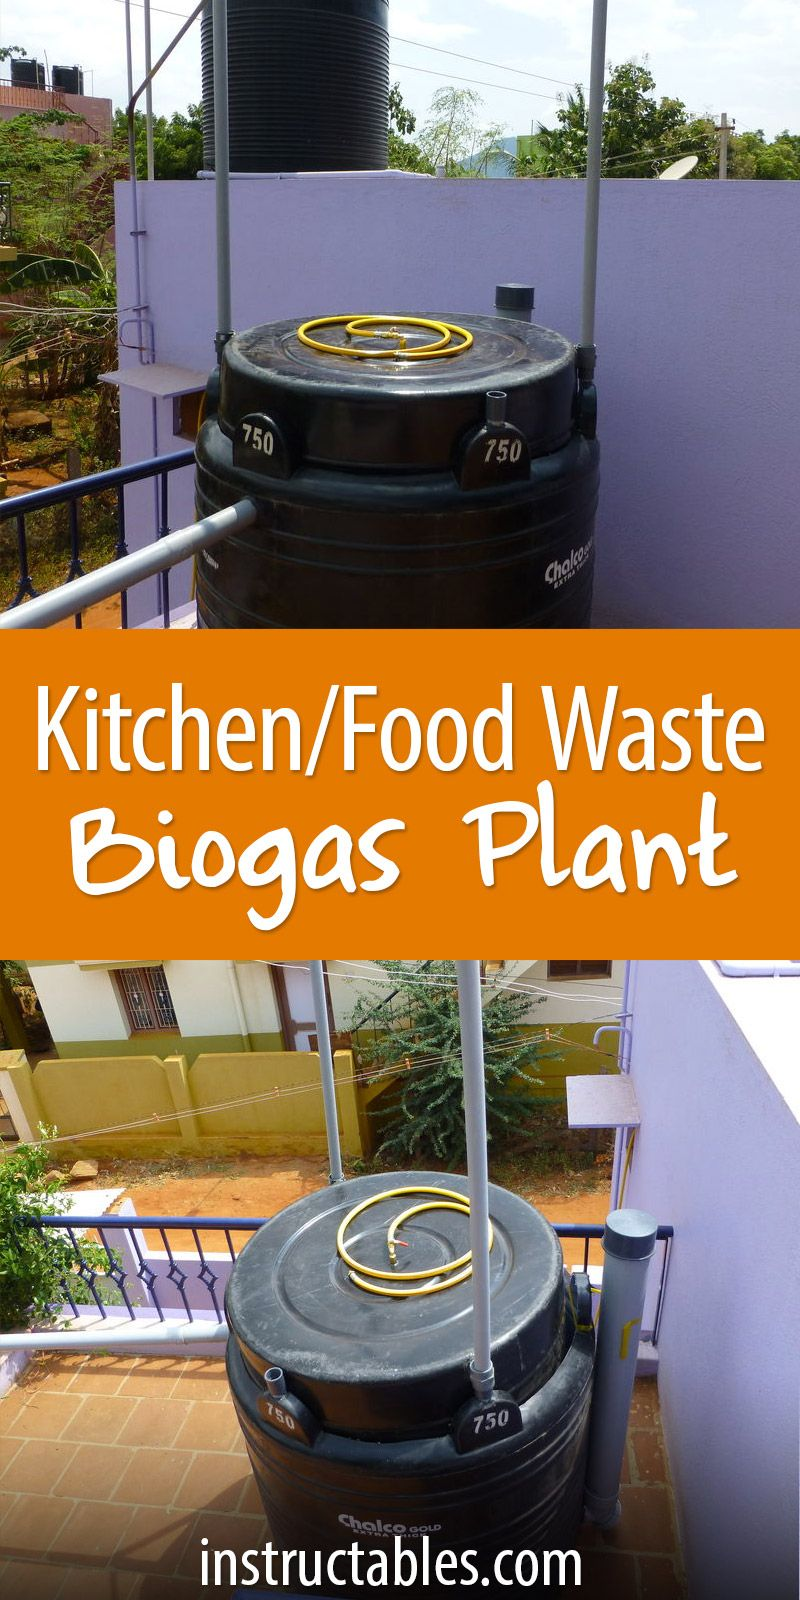 How To Build A Medium Sized Biogas Plant Composting Pinterest Large Design Gobar Gas Diagram Turn Kitchen Waste Compost Into In 750 Liter Tank